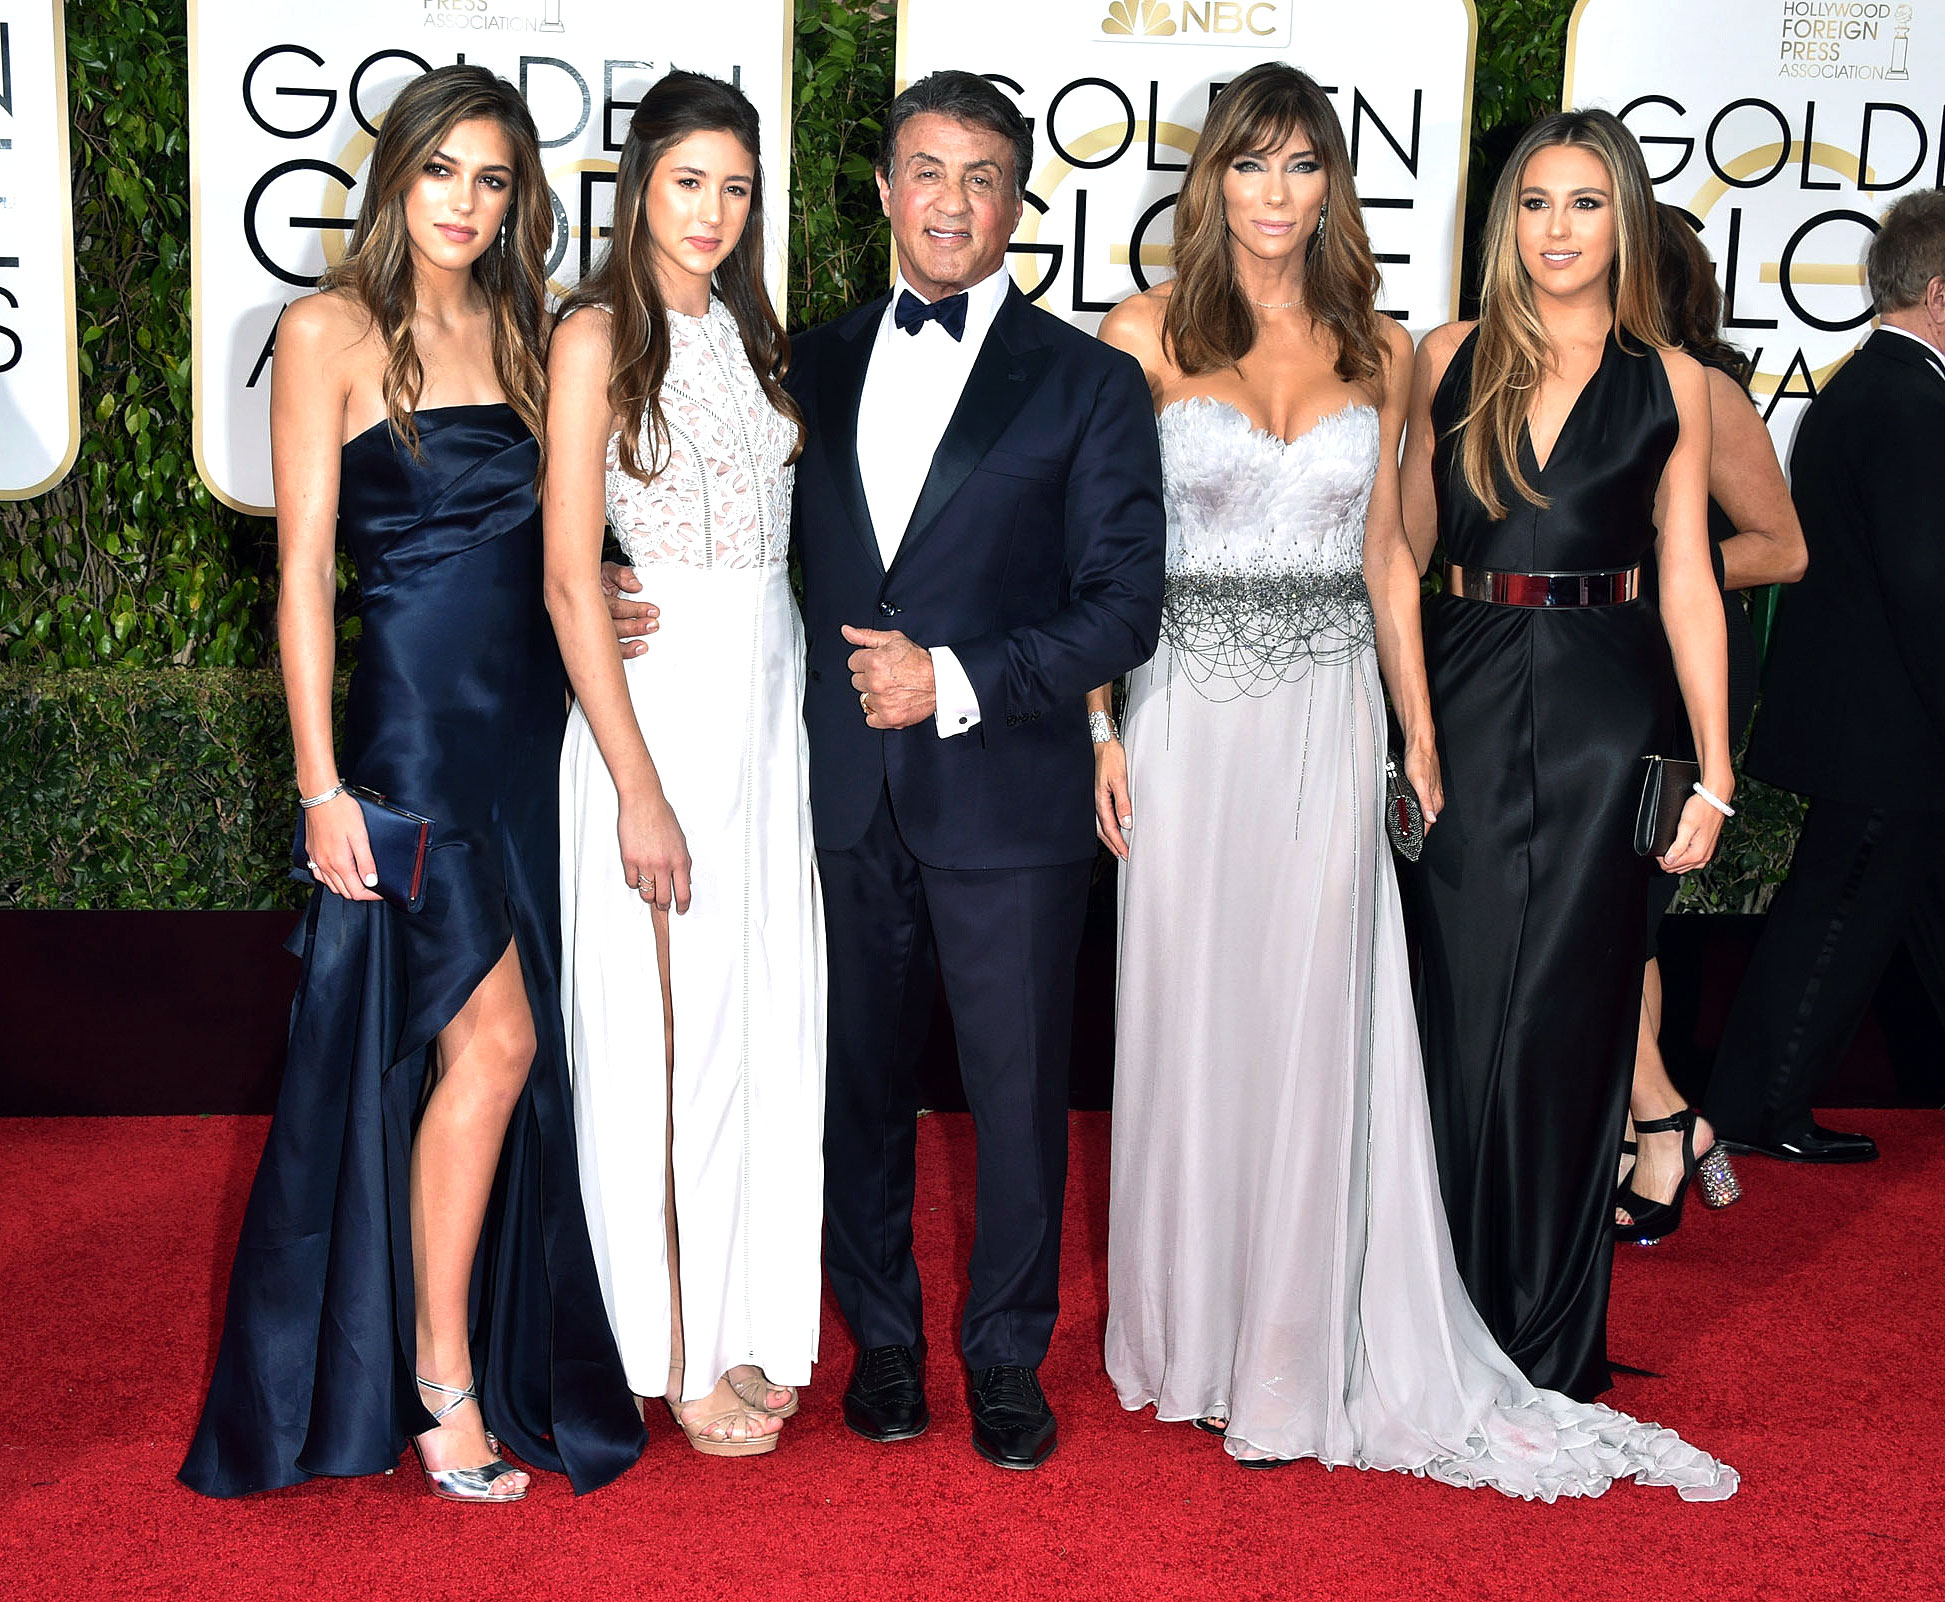 Sylvester Stallon and family at the Golden Globes 2016